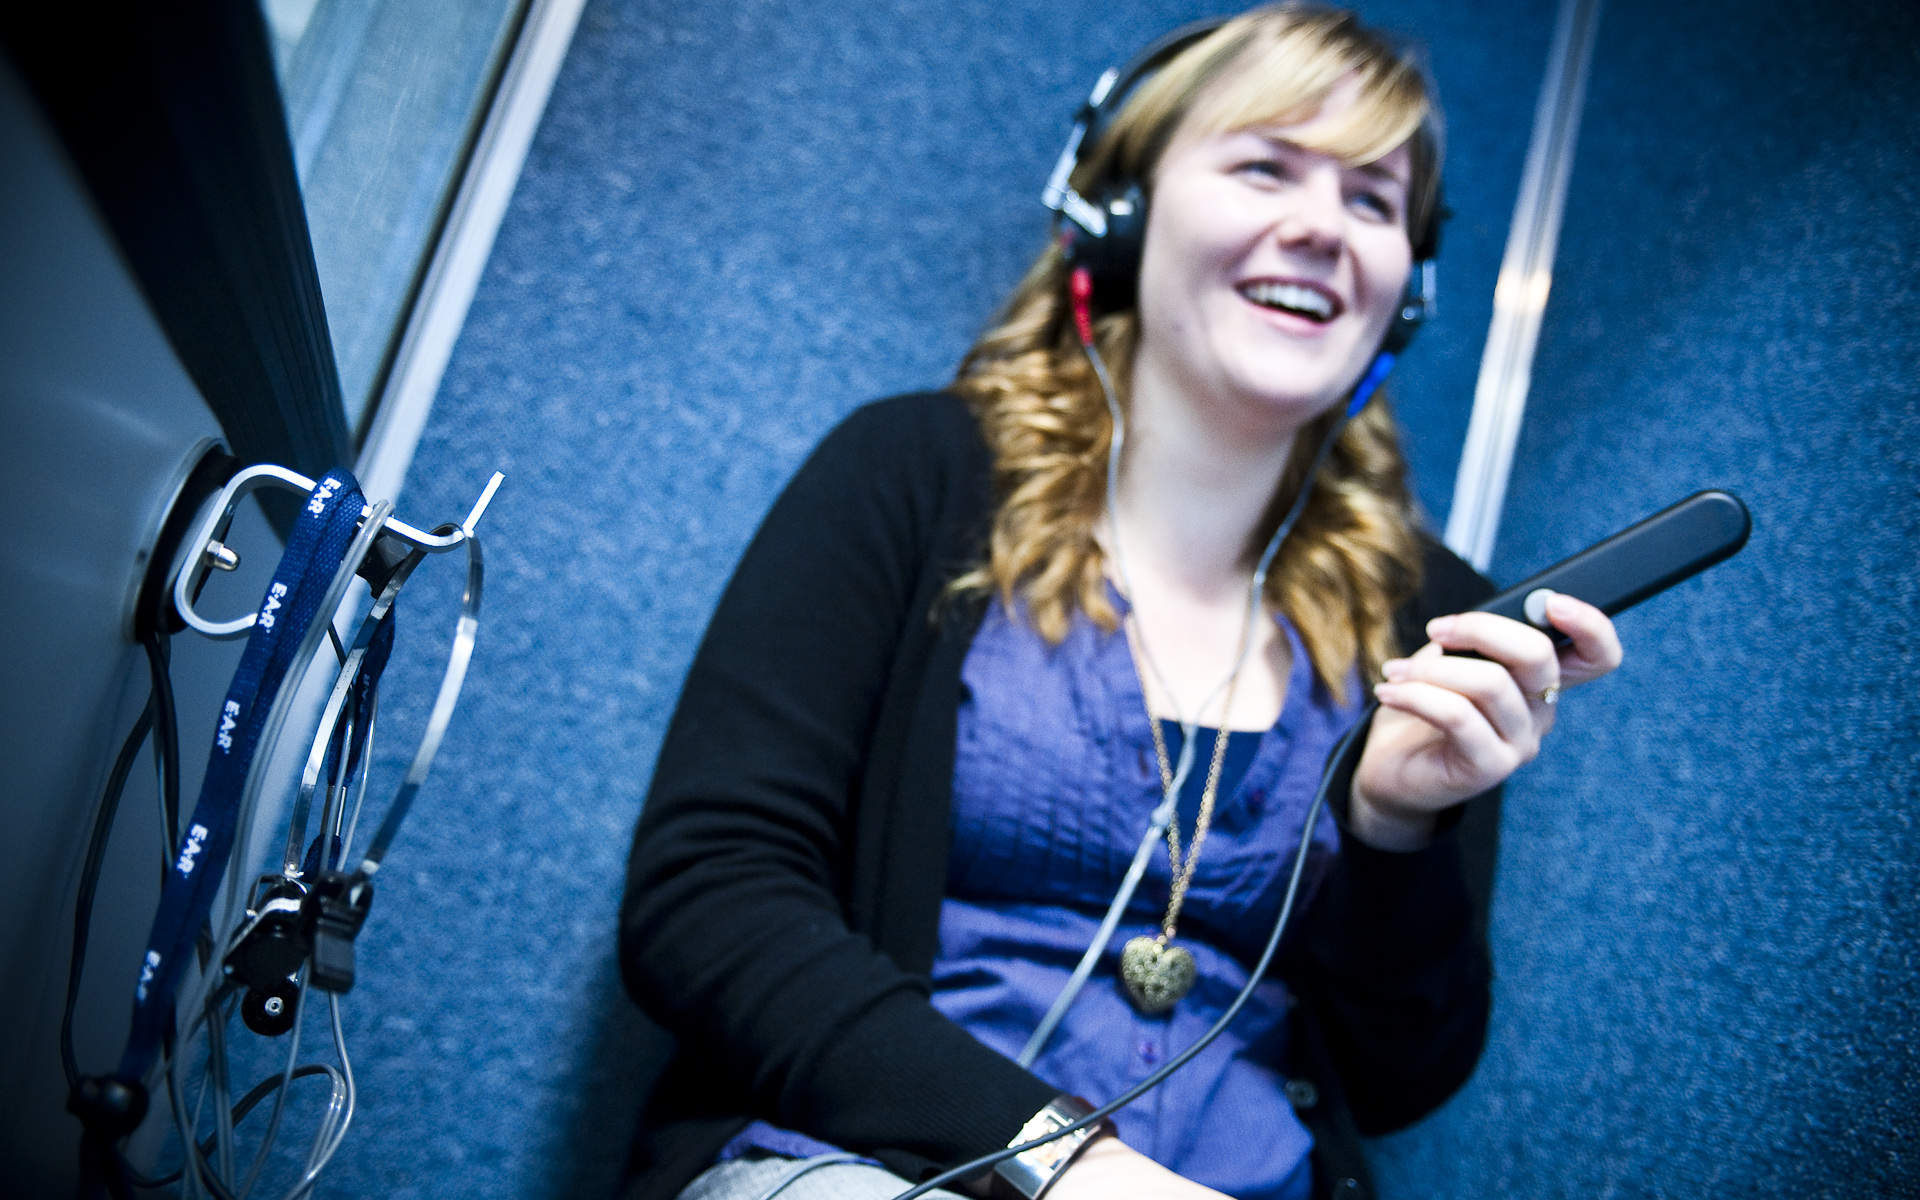 female audiology student in sound booth wearing headphones